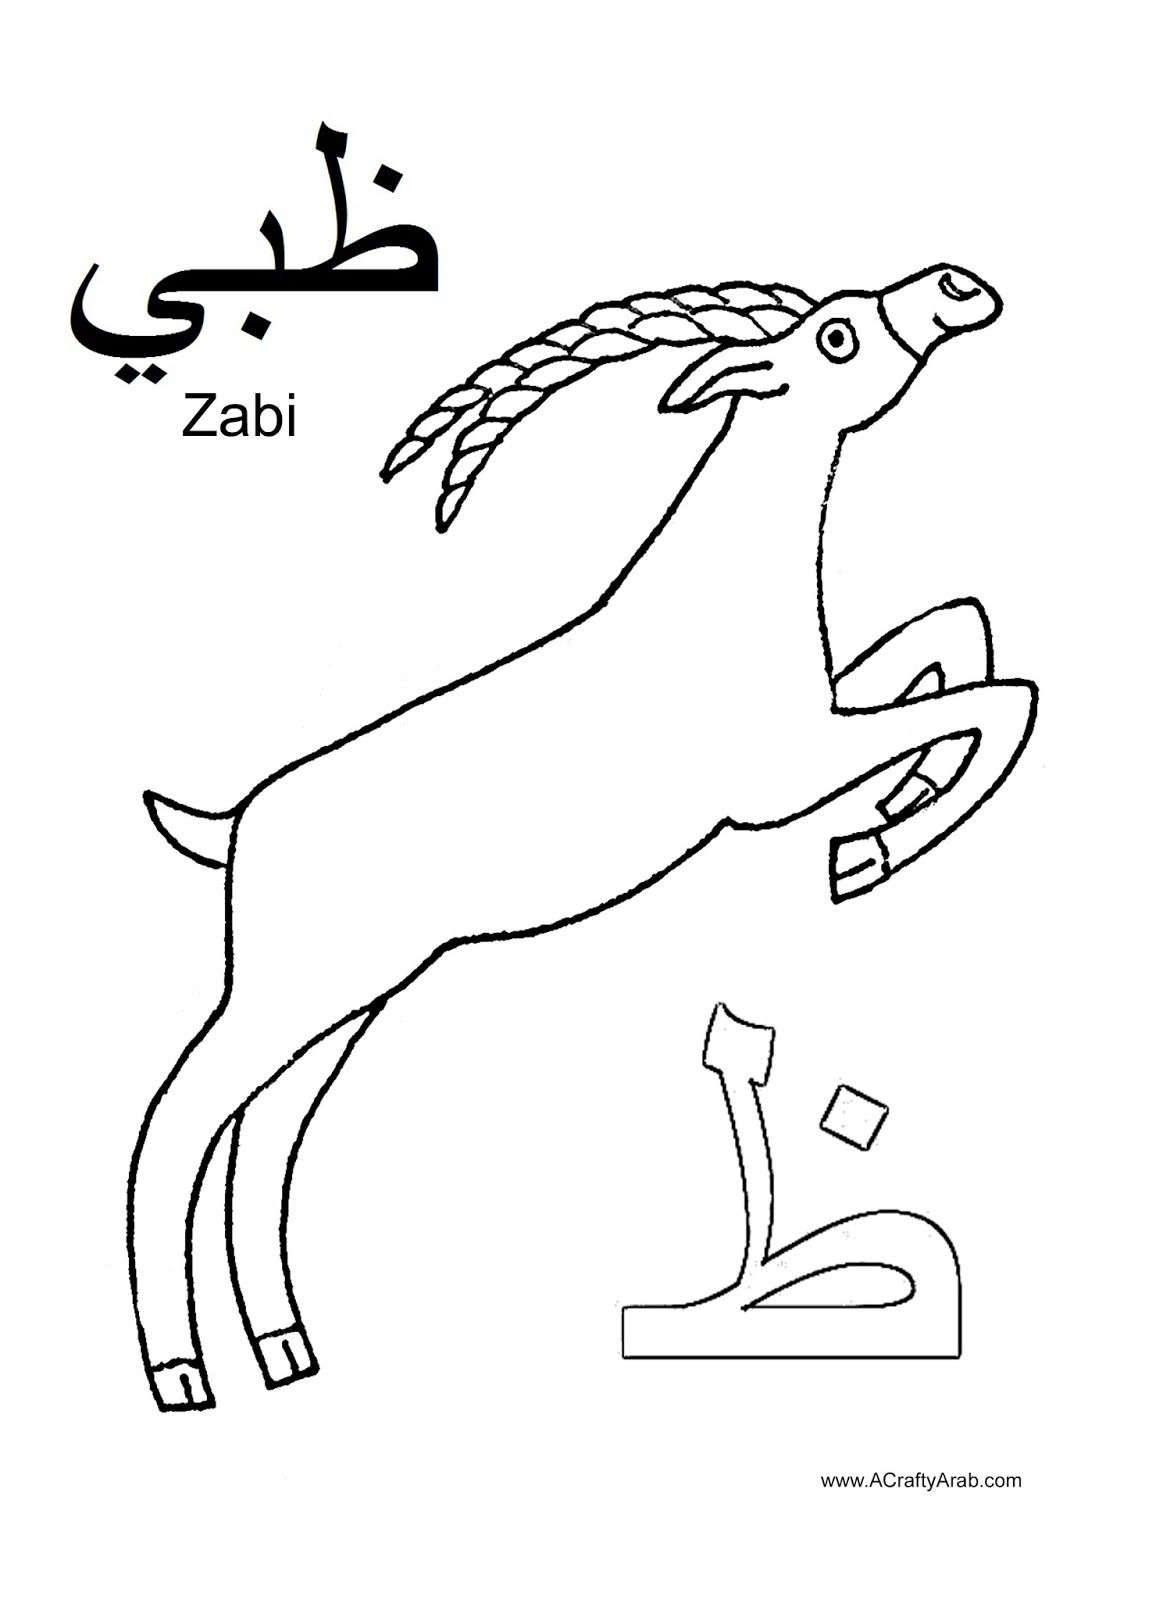 A Crafty Arab Arabic Alphabet Coloring Pages Za Is For